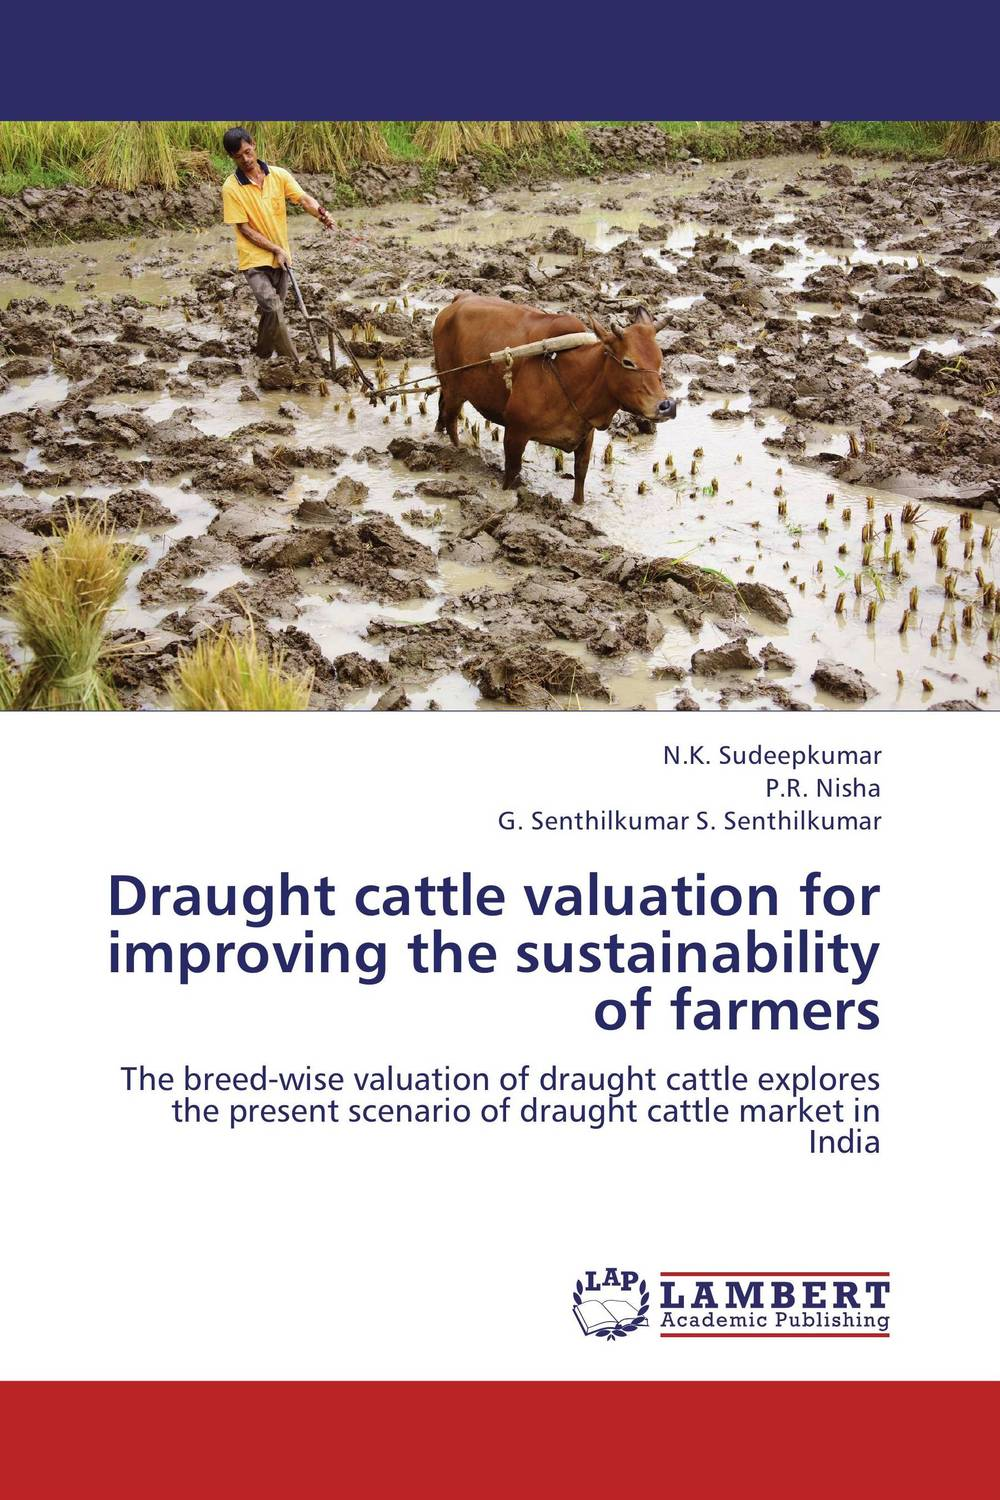 Draught cattle valuation for improving the sustainability of farmers